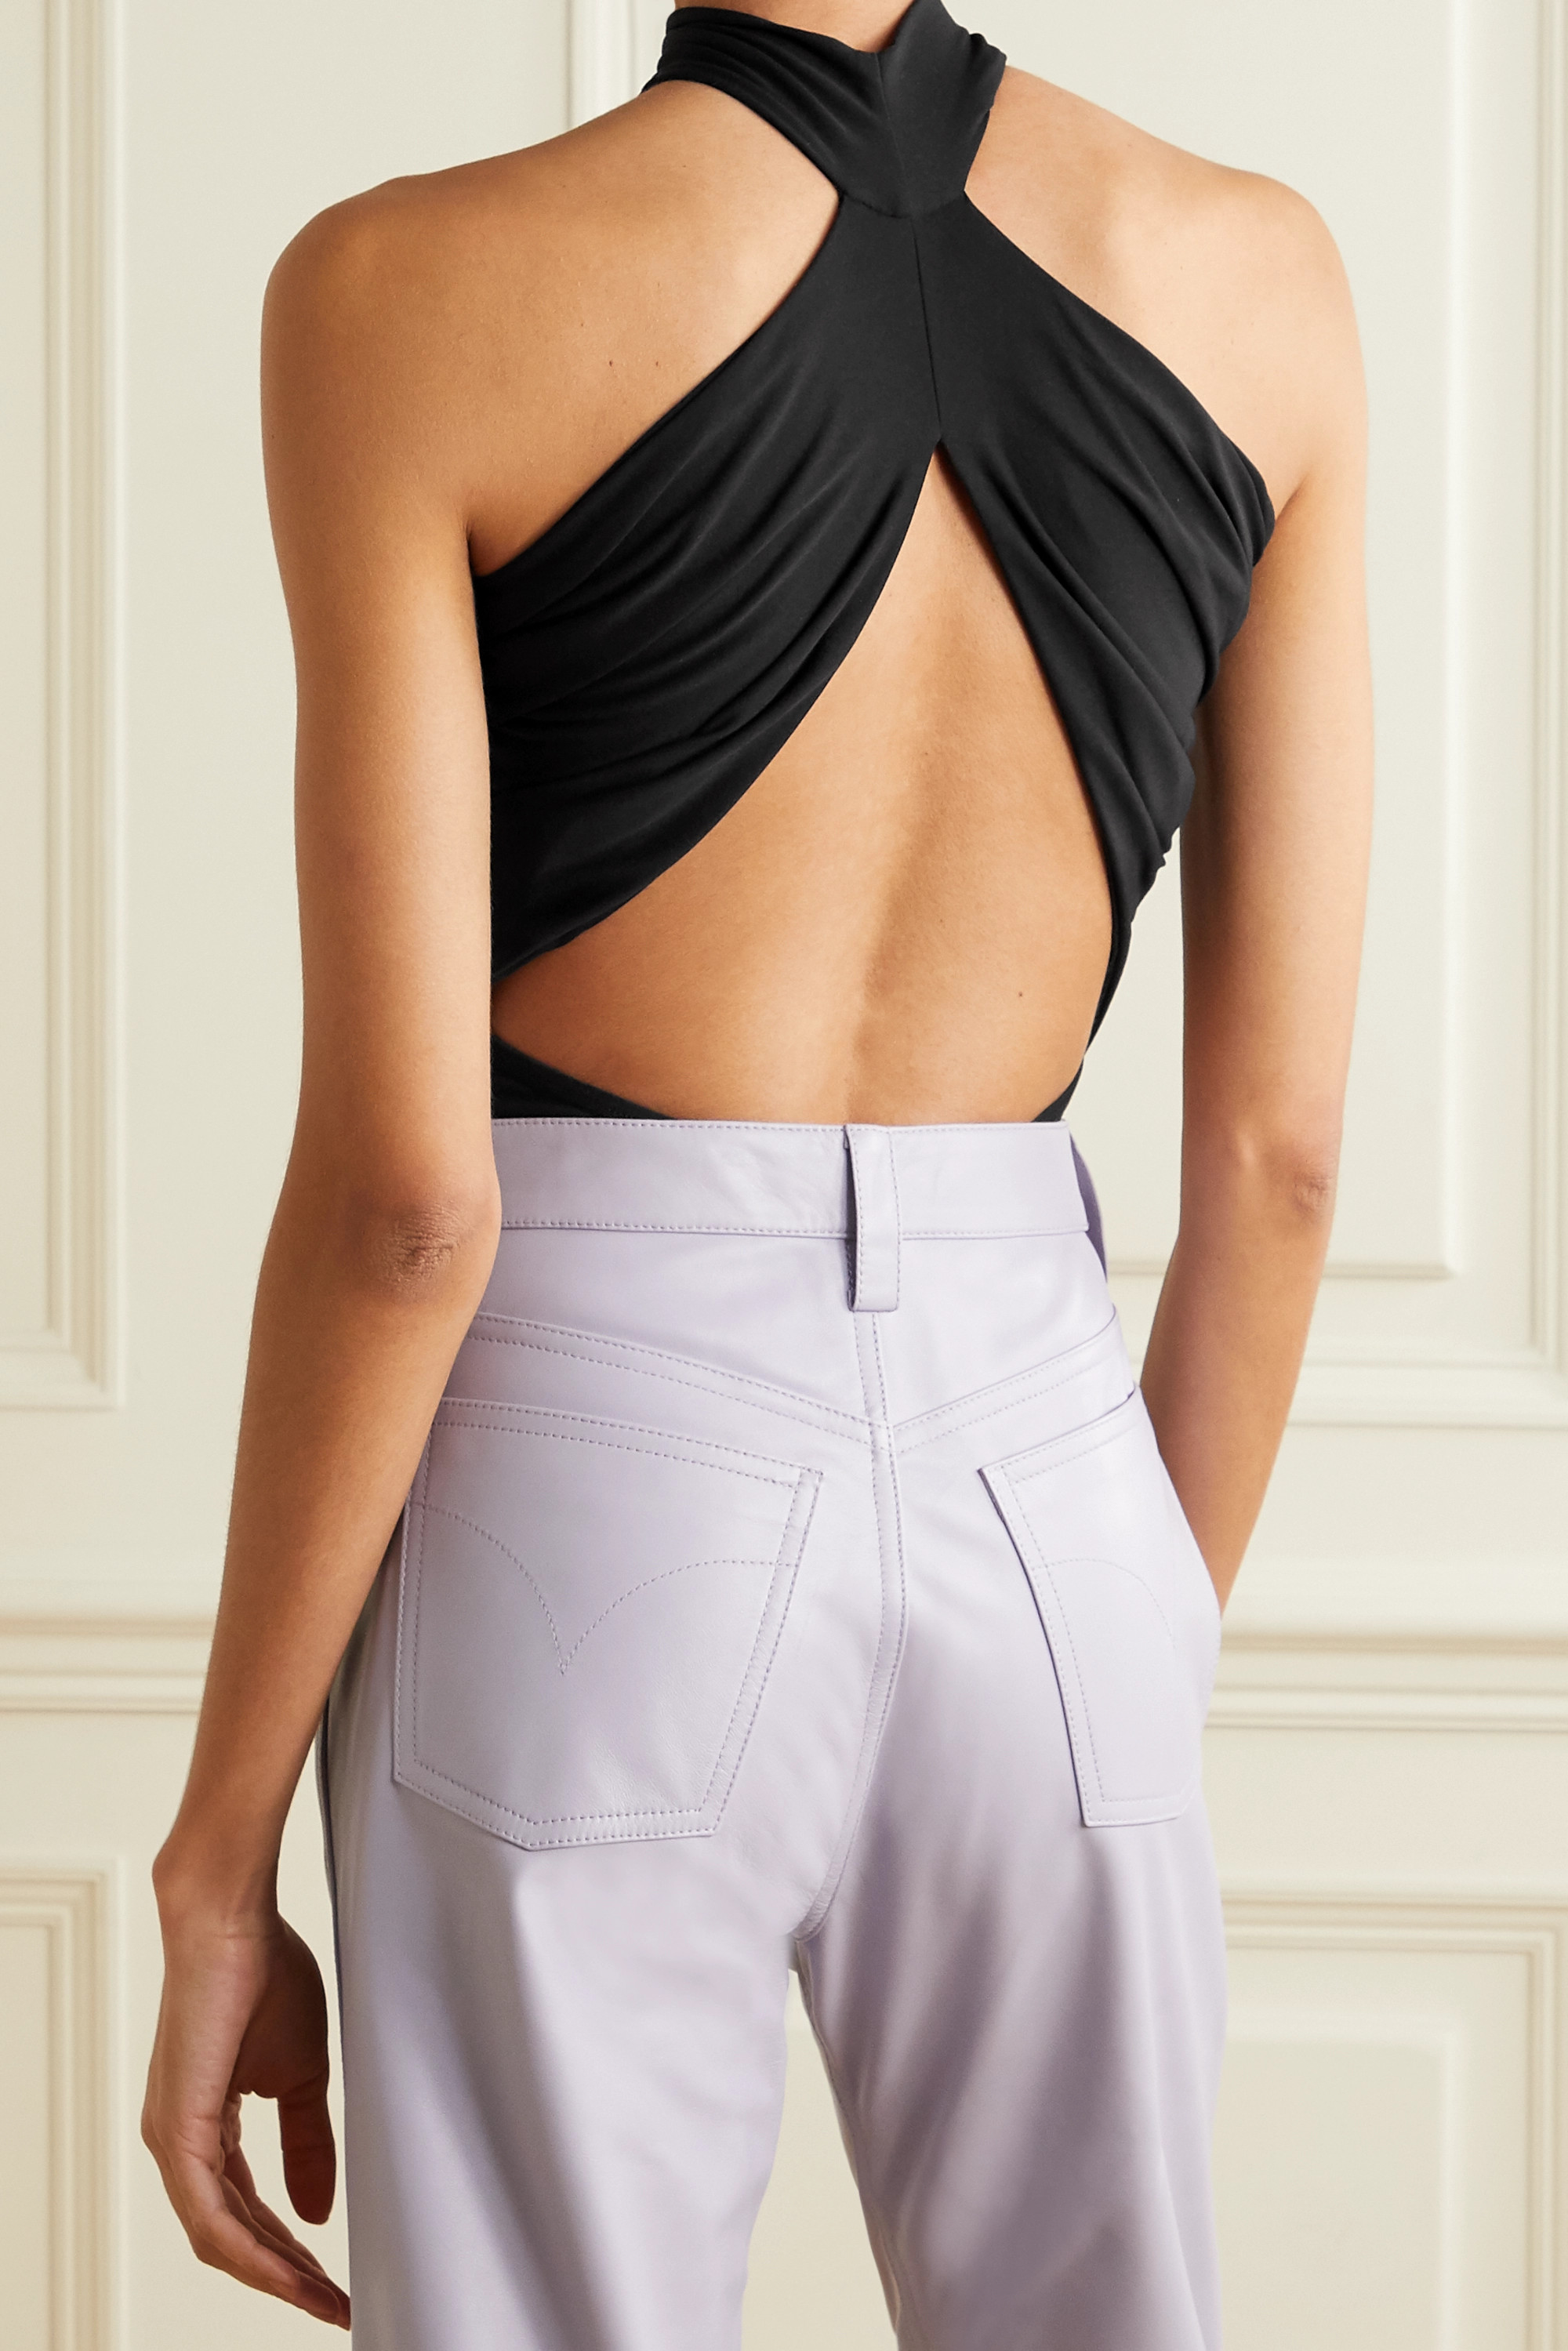 Alix NYC Bentley open-back stretch-jersey thong bodysuit